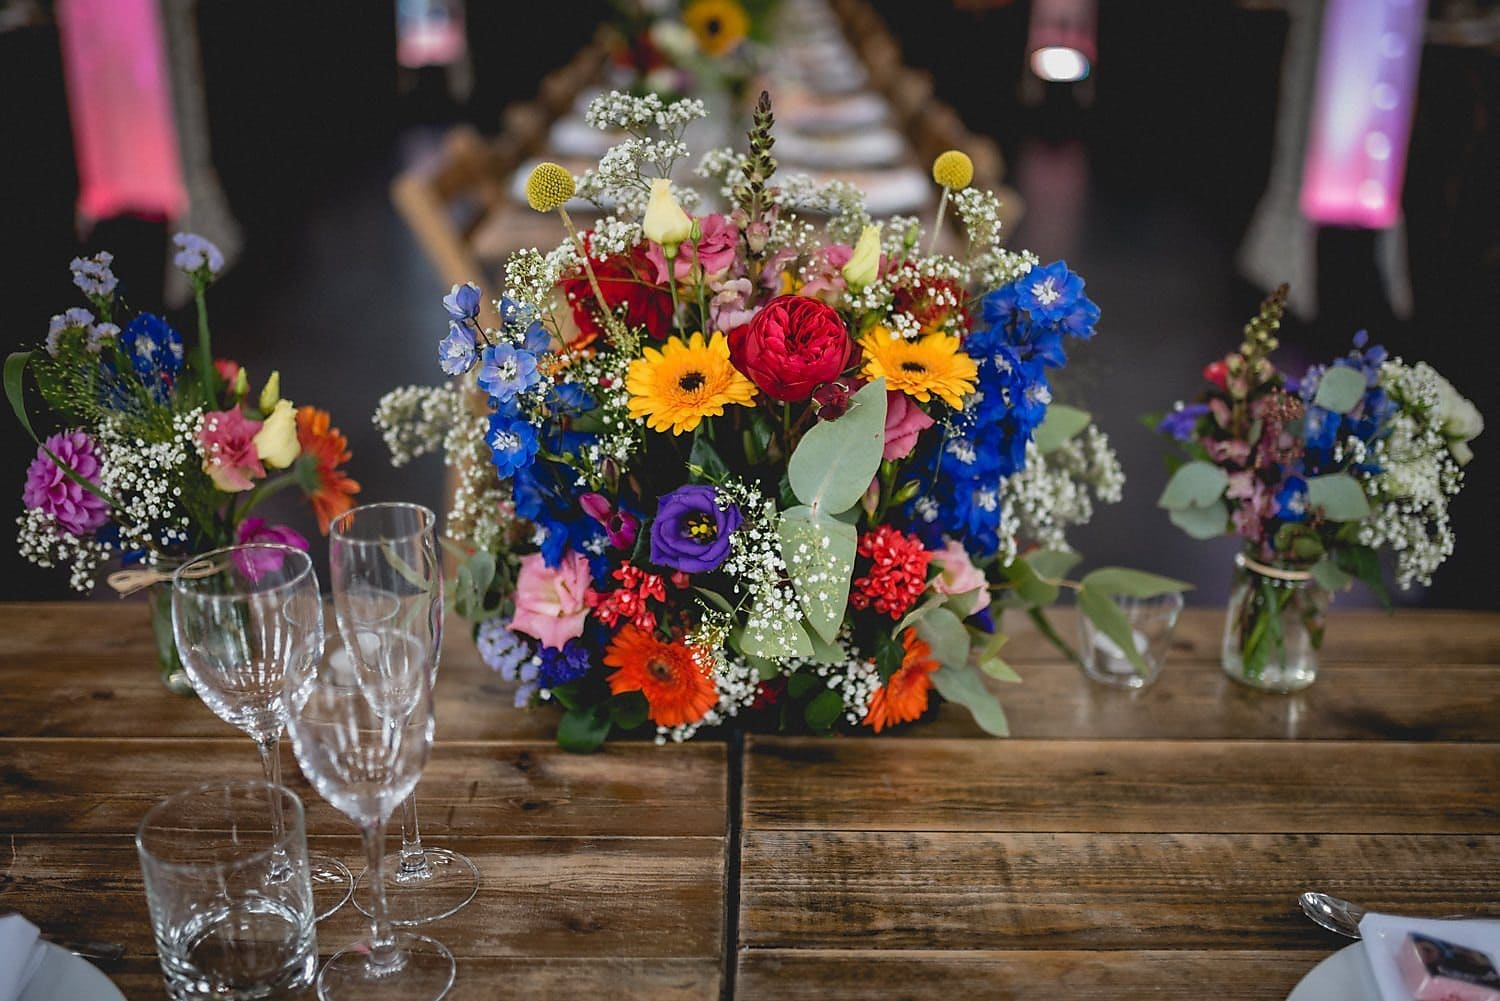 The top table flowers at a colourful West Reservoir Centre wedding. The flowers include gerberas, gypsophila and craspedia